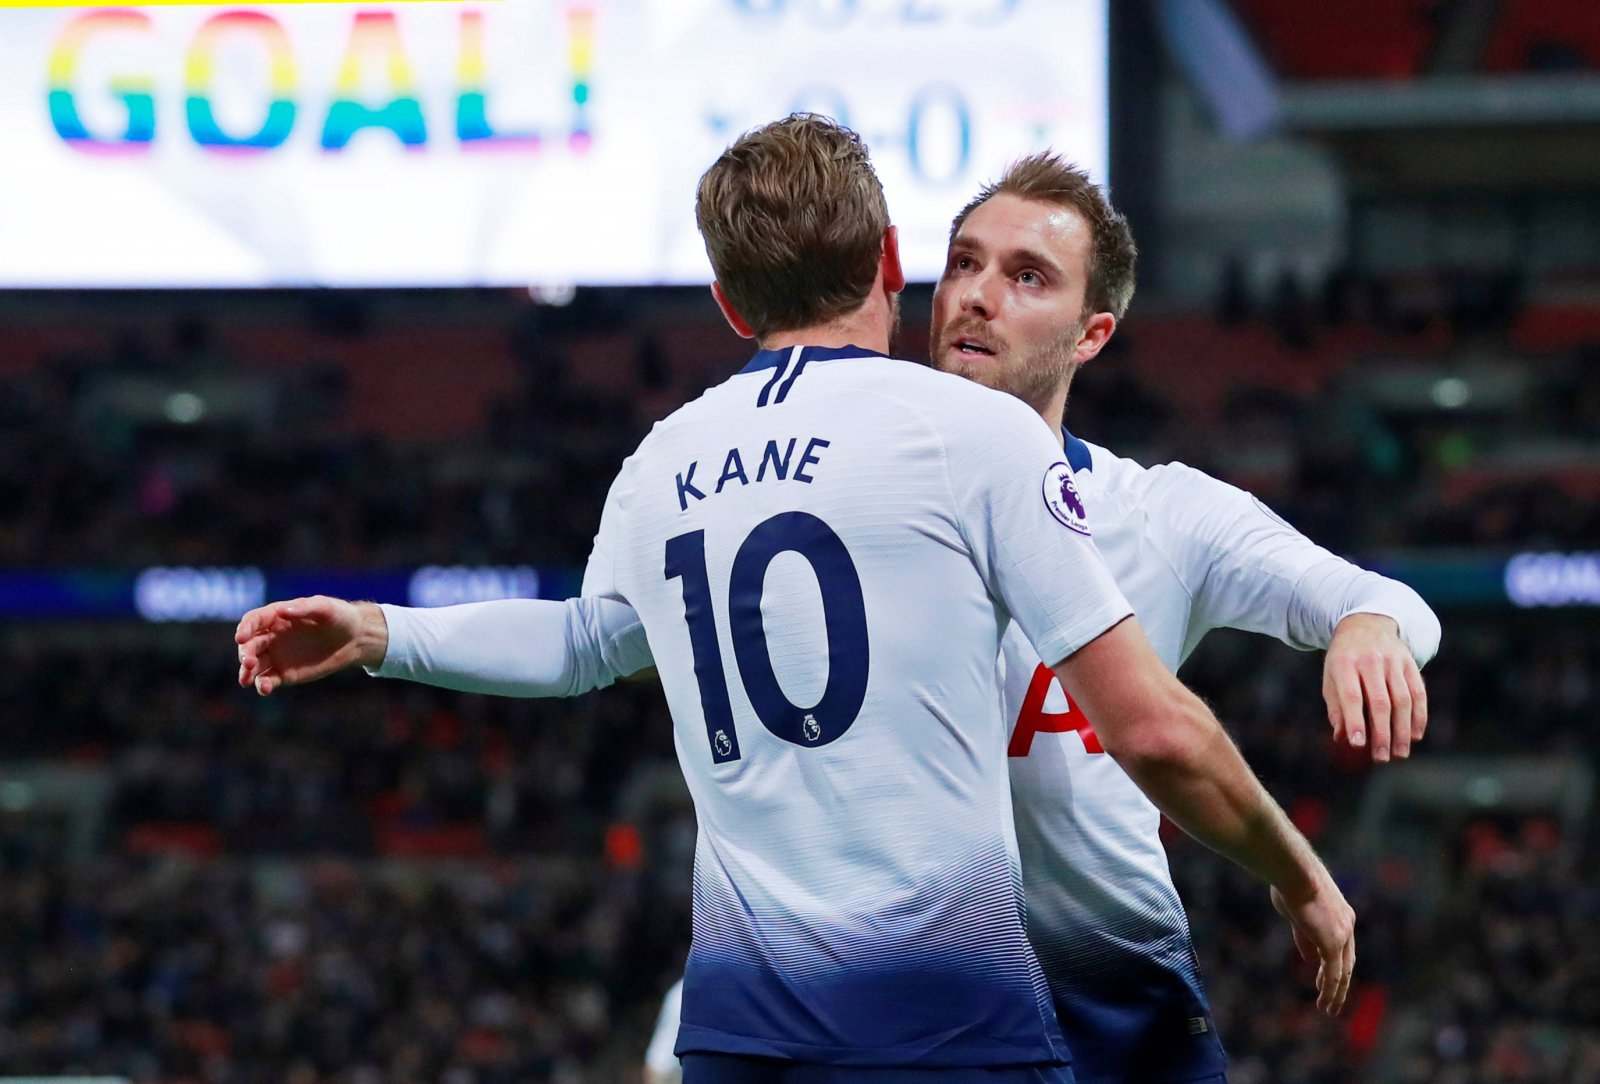 These Tottenham fans were thrilled with Christian Eriksen last night